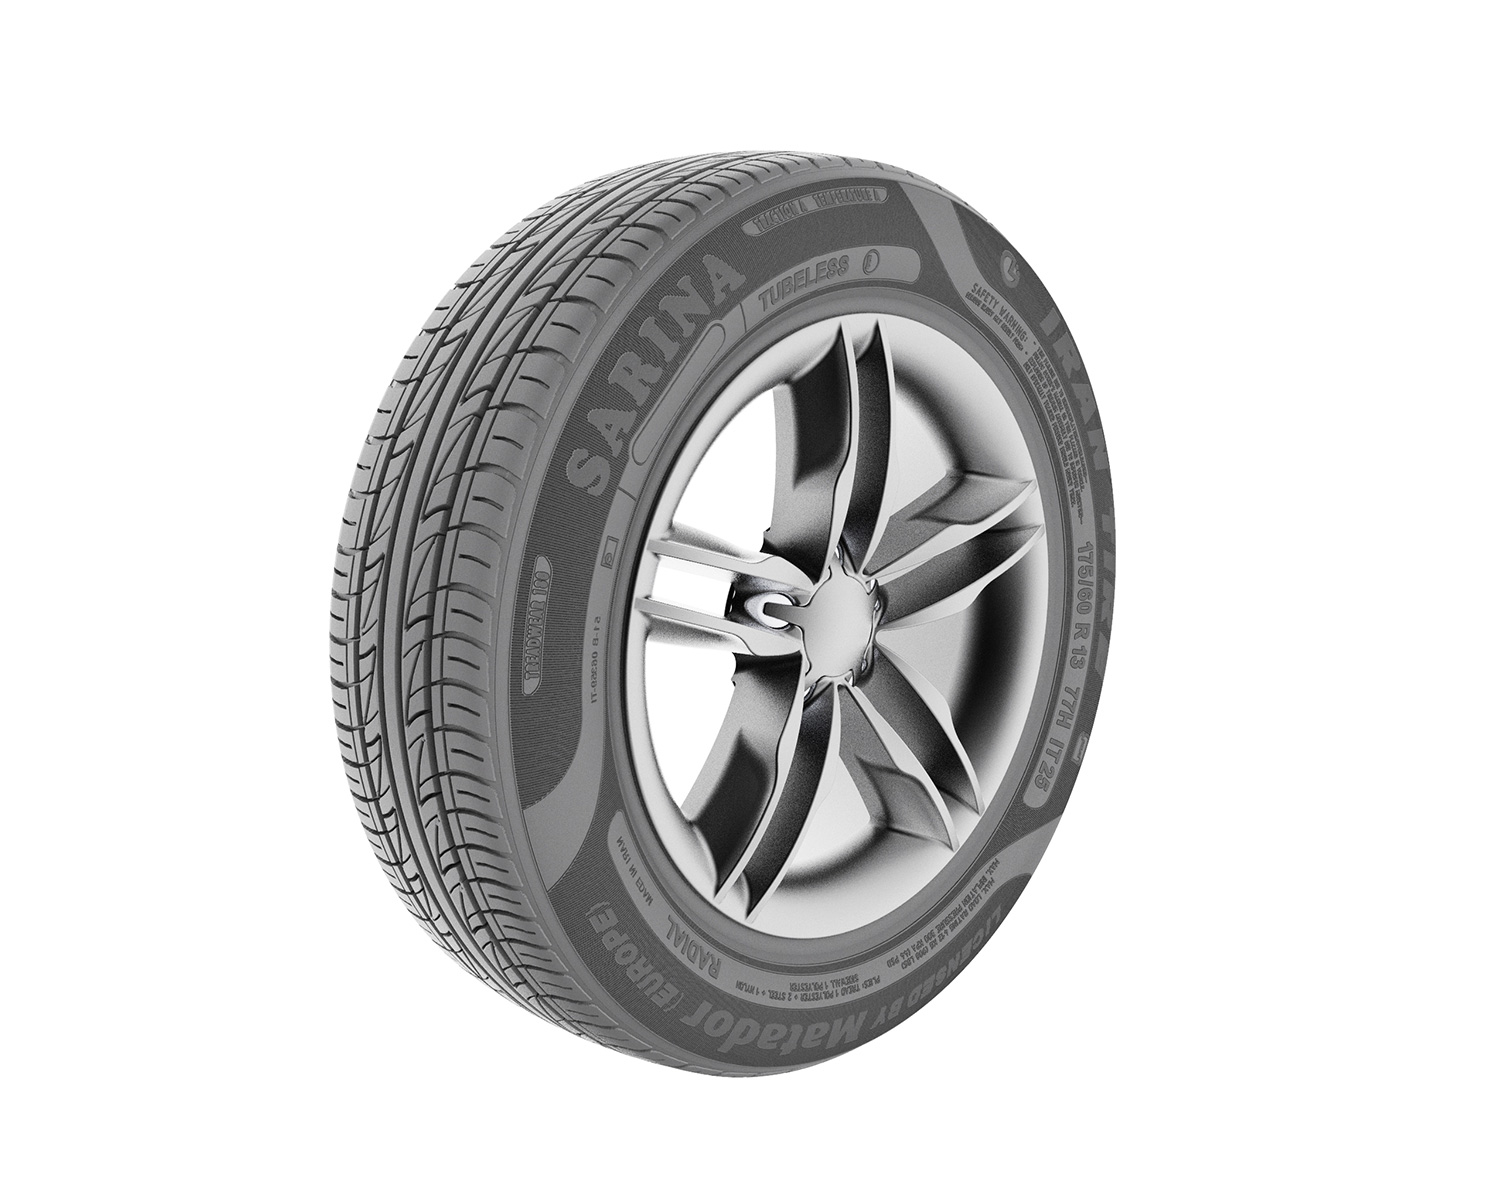 Tire3 - رندر صنعتی سه بعدی